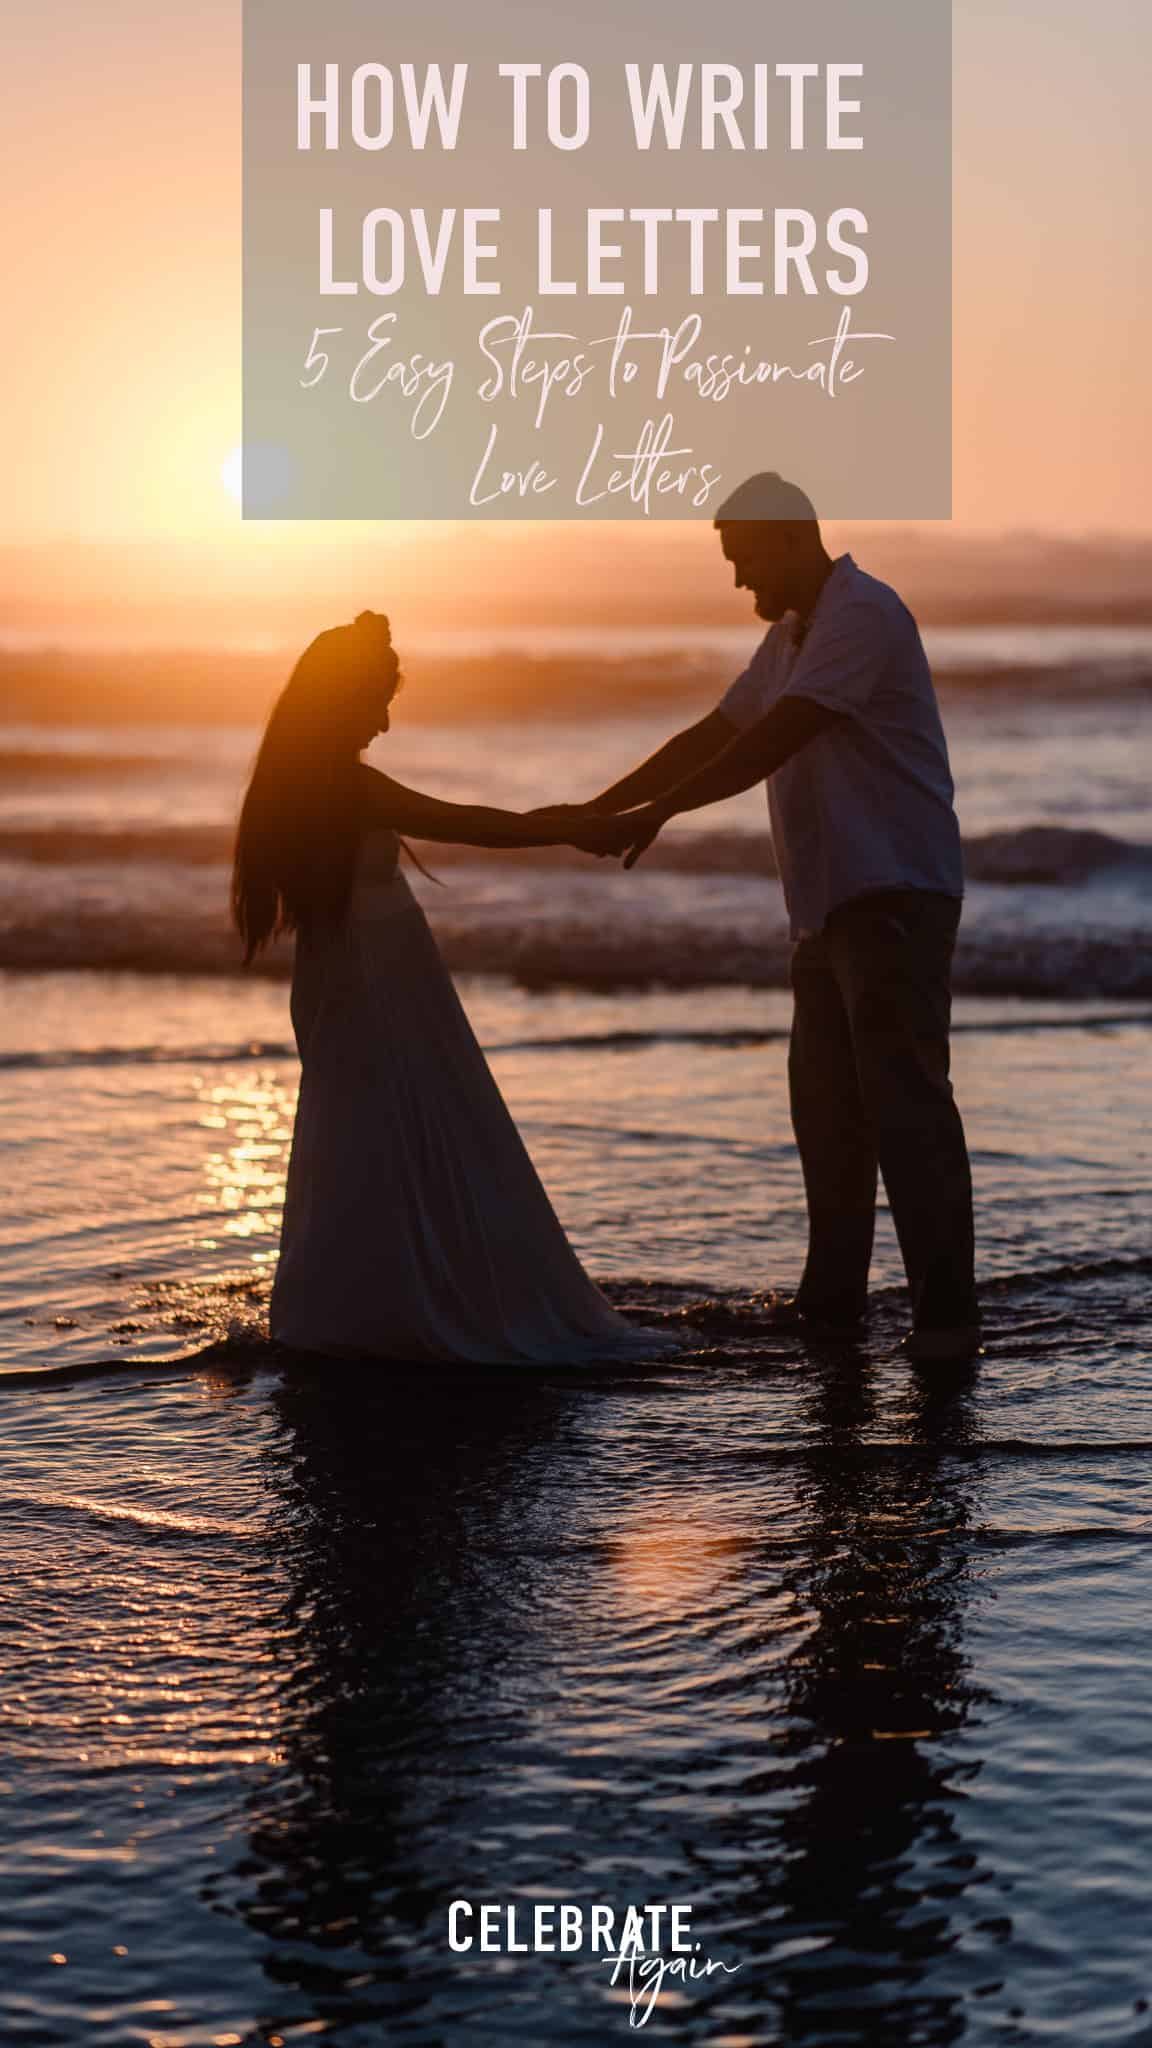 """""""how to write love letters 5 easy steps to writing passionate love letters for him or her"""" coupe holding hands as the sunsets behind them in beautiful colors"""